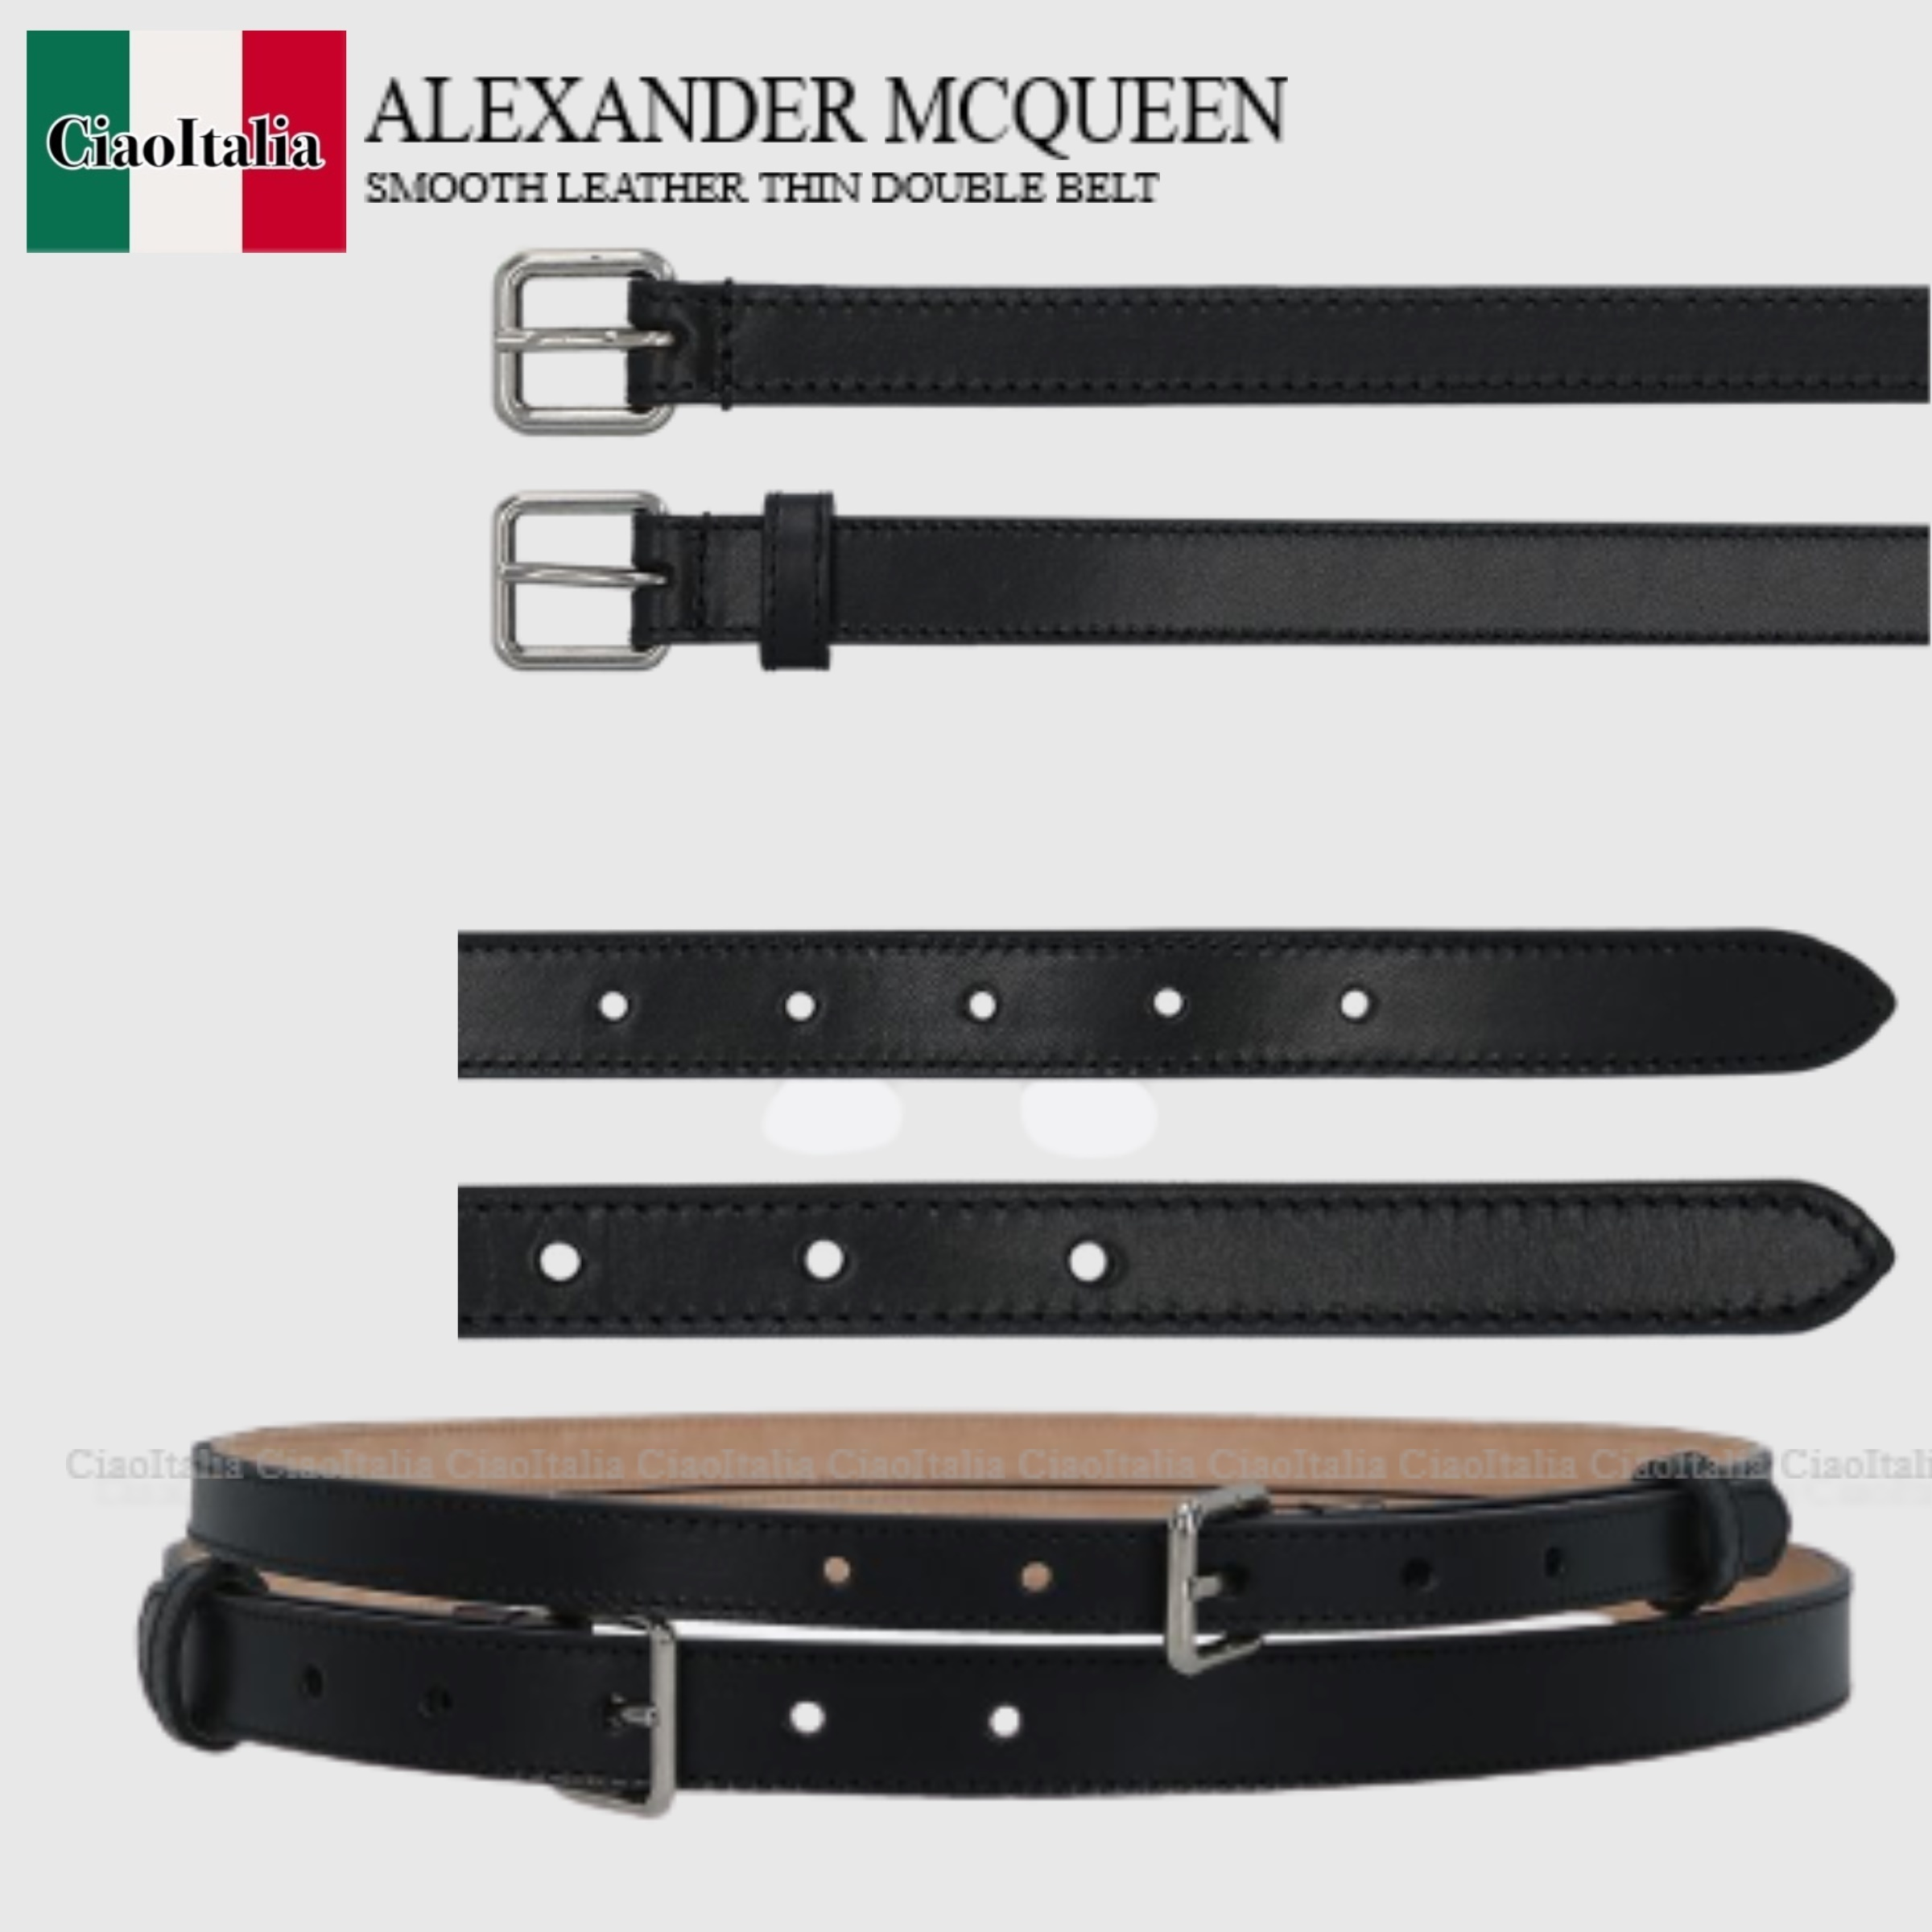 ALEXANDER McQUEEN SMOOTH LEATHER THIN DOUBLE BELT (alexander mcqueen/ベルト) 640944 1BR0I  6409441BR0I  6409441BR0I 1000